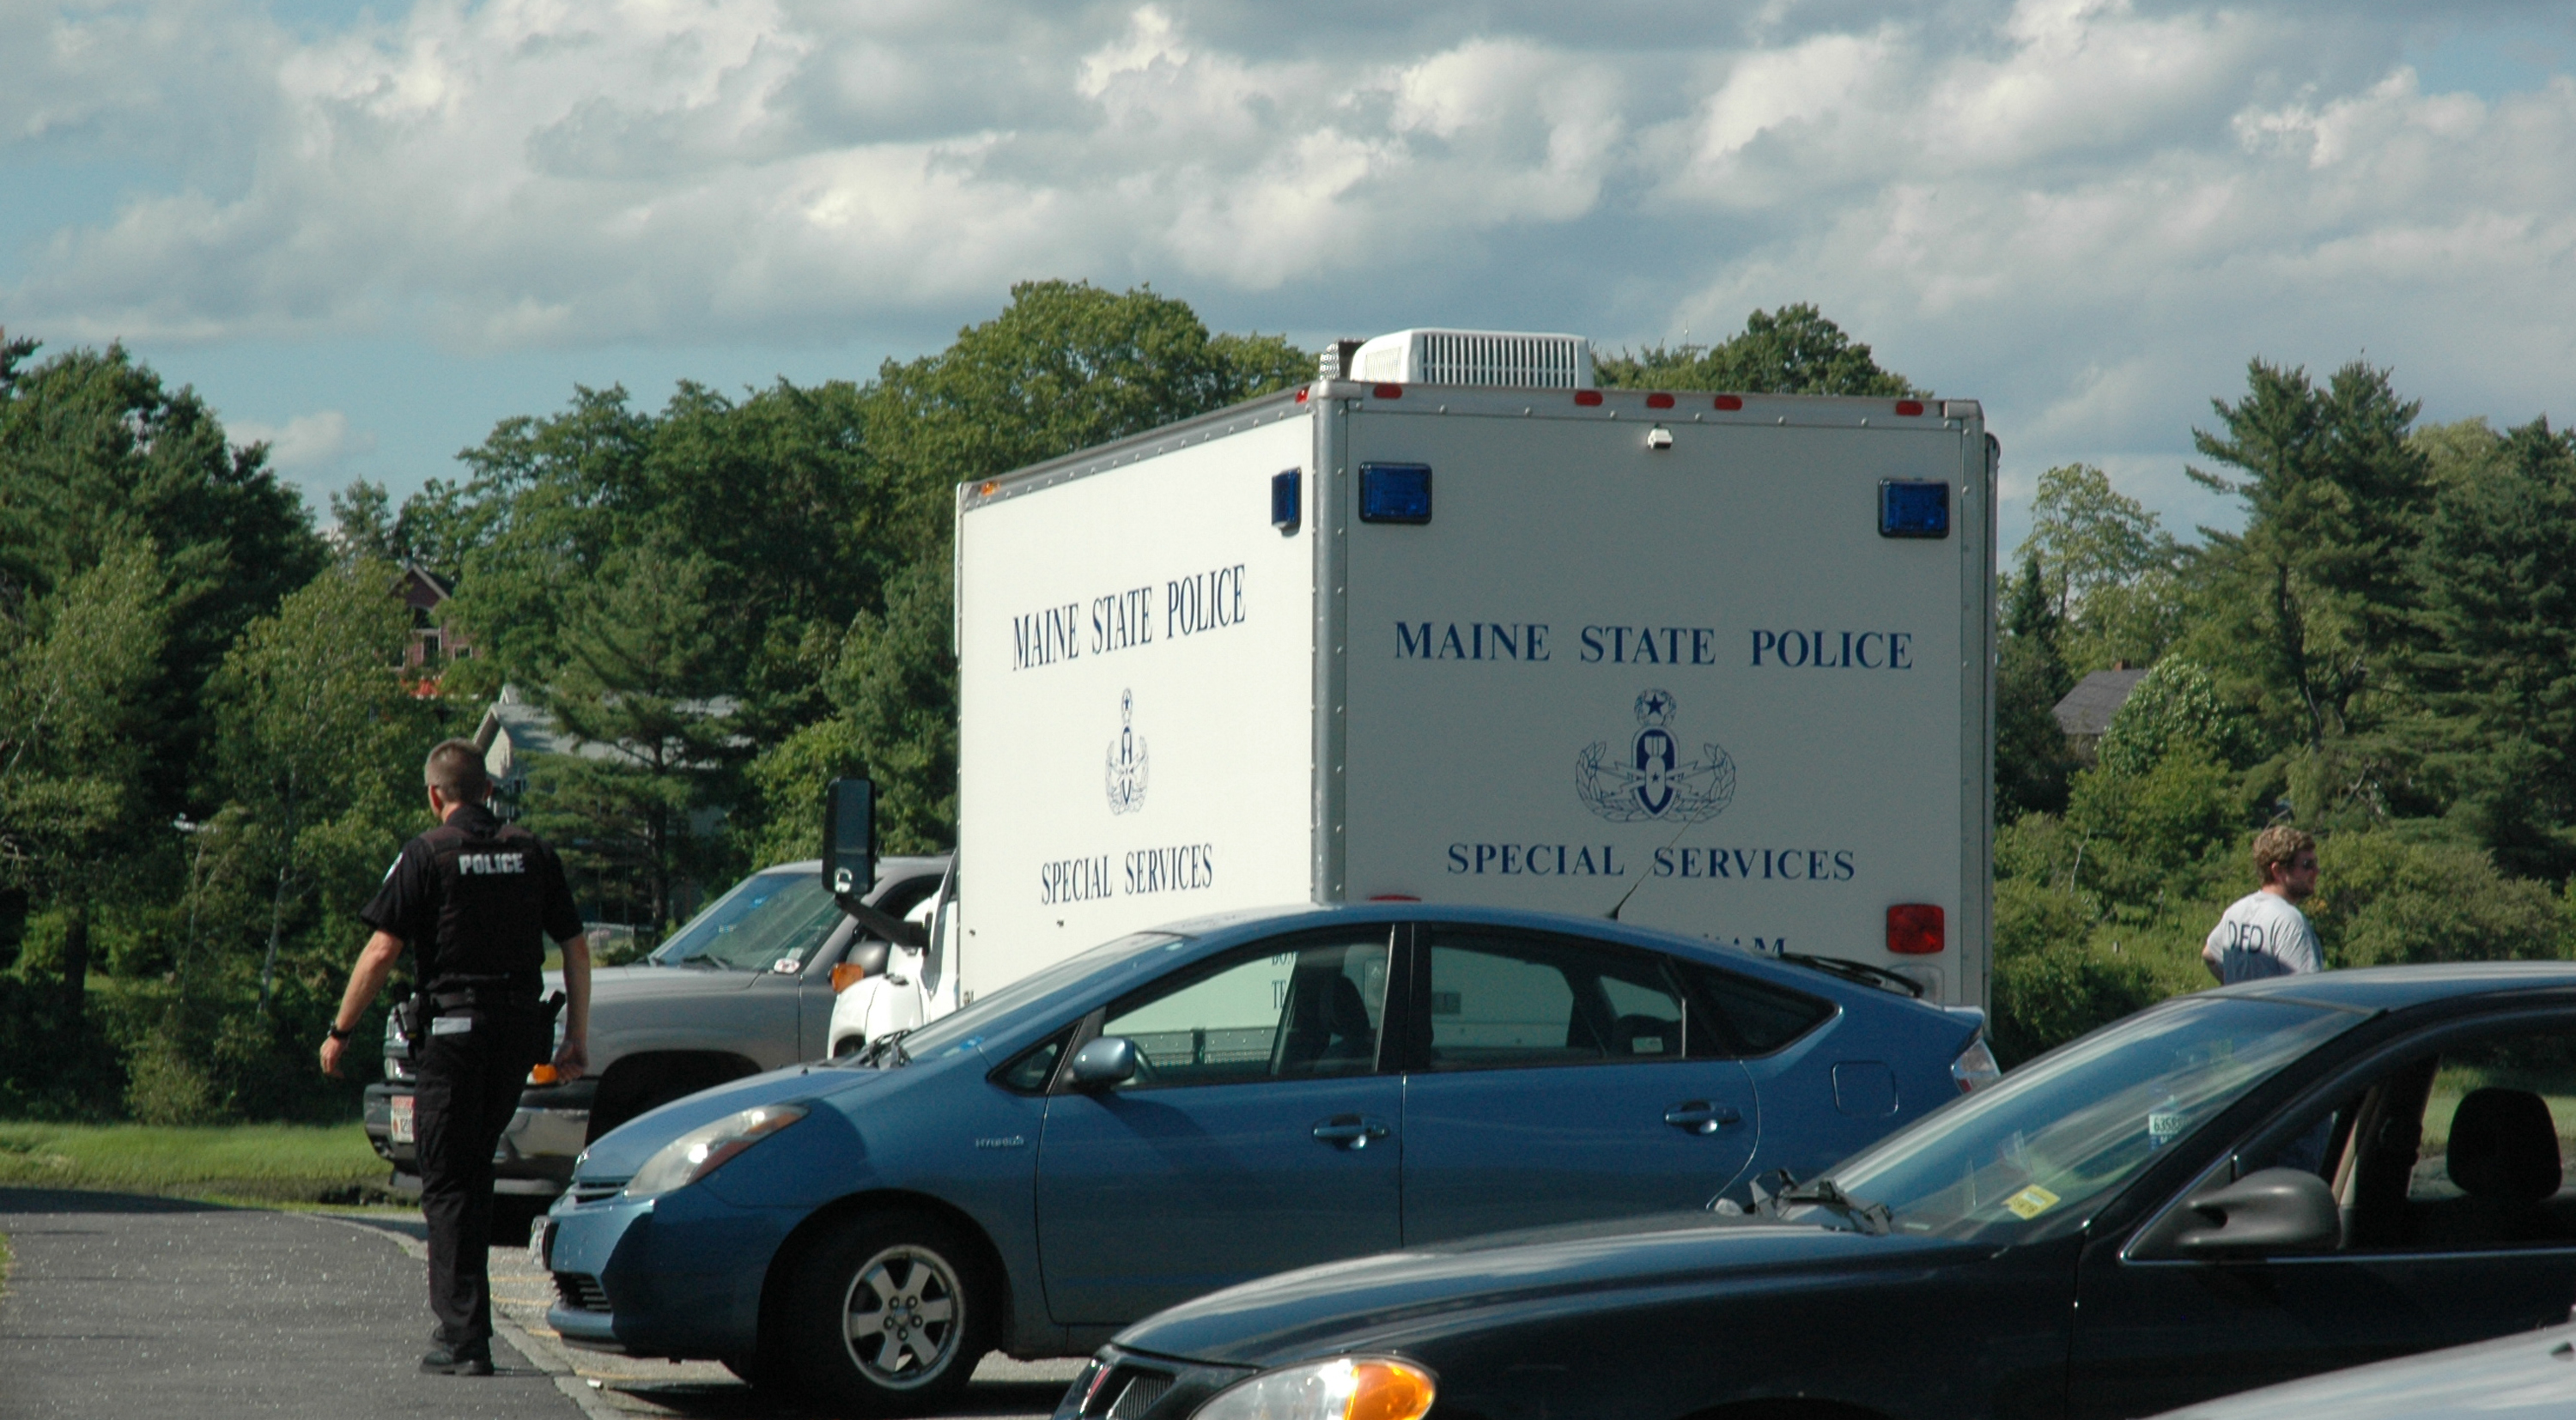 A unit from the Maine State Police Special Services division was called to the scene of LincolnHealth's Miles campus in Damariscotta to investigate a suspicious package found outside of the hospital during the afternoon of Sunday, July 2. (Alexander Violo photo)